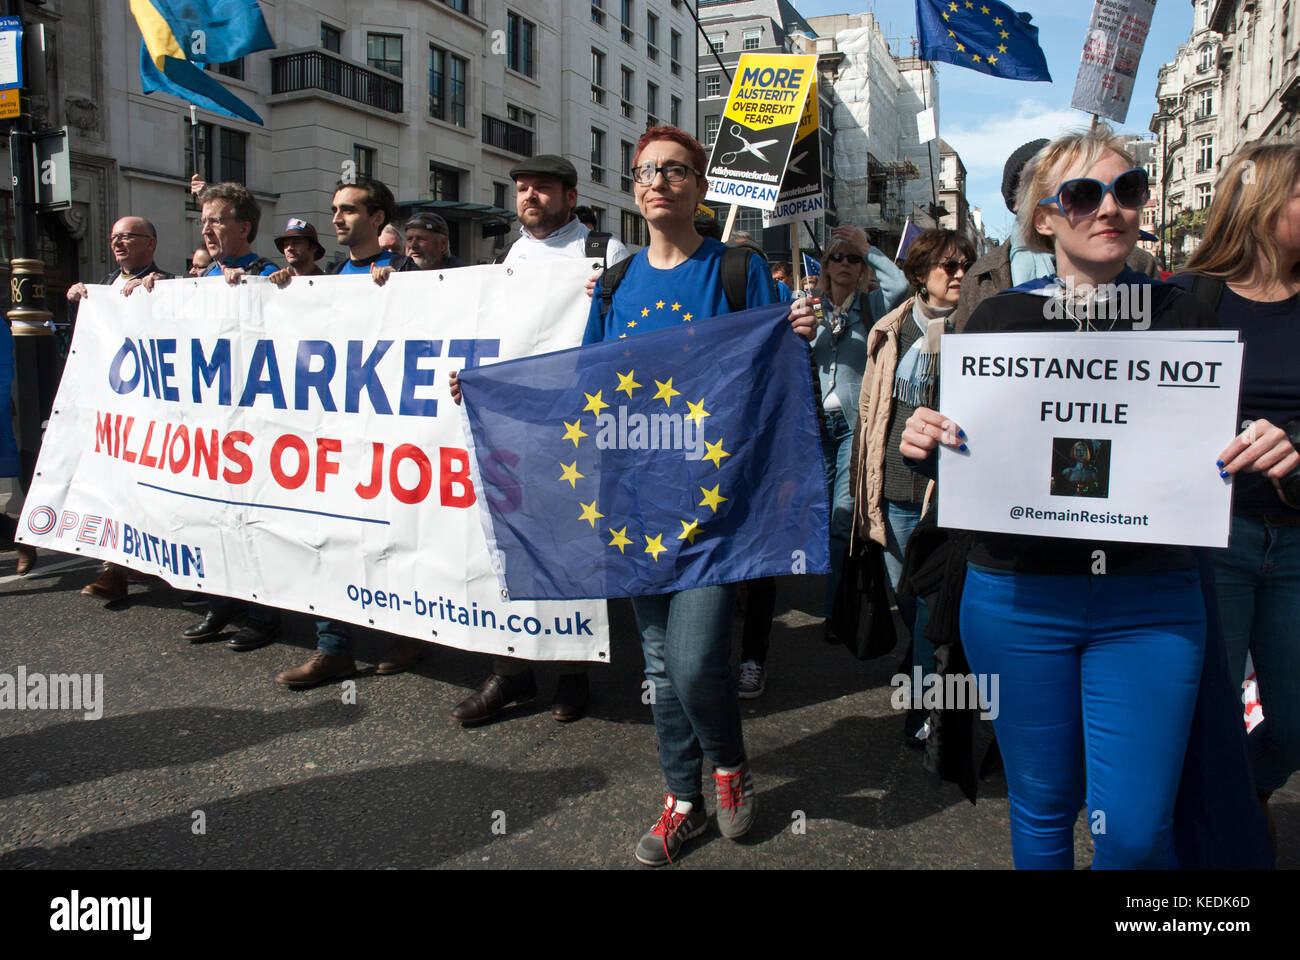 Demonstrators against Brexit march with large banners 'One Market/ Millions of jobs', European flag and - Stock Image